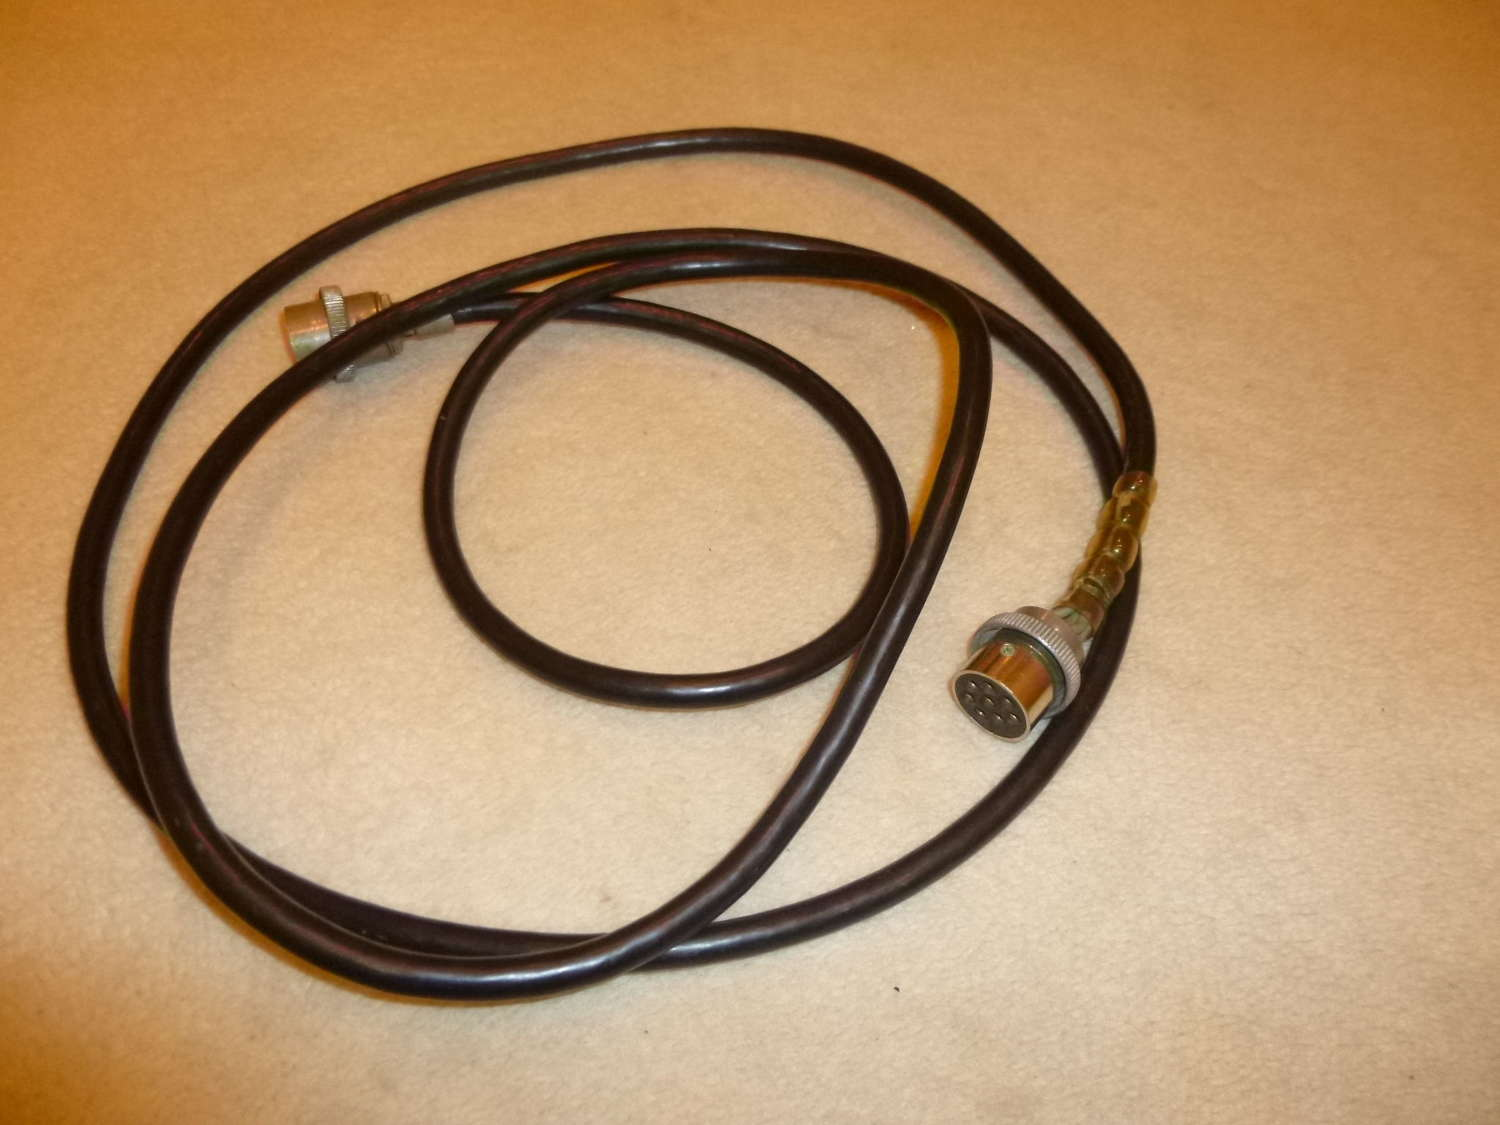 US Air Force command set cable